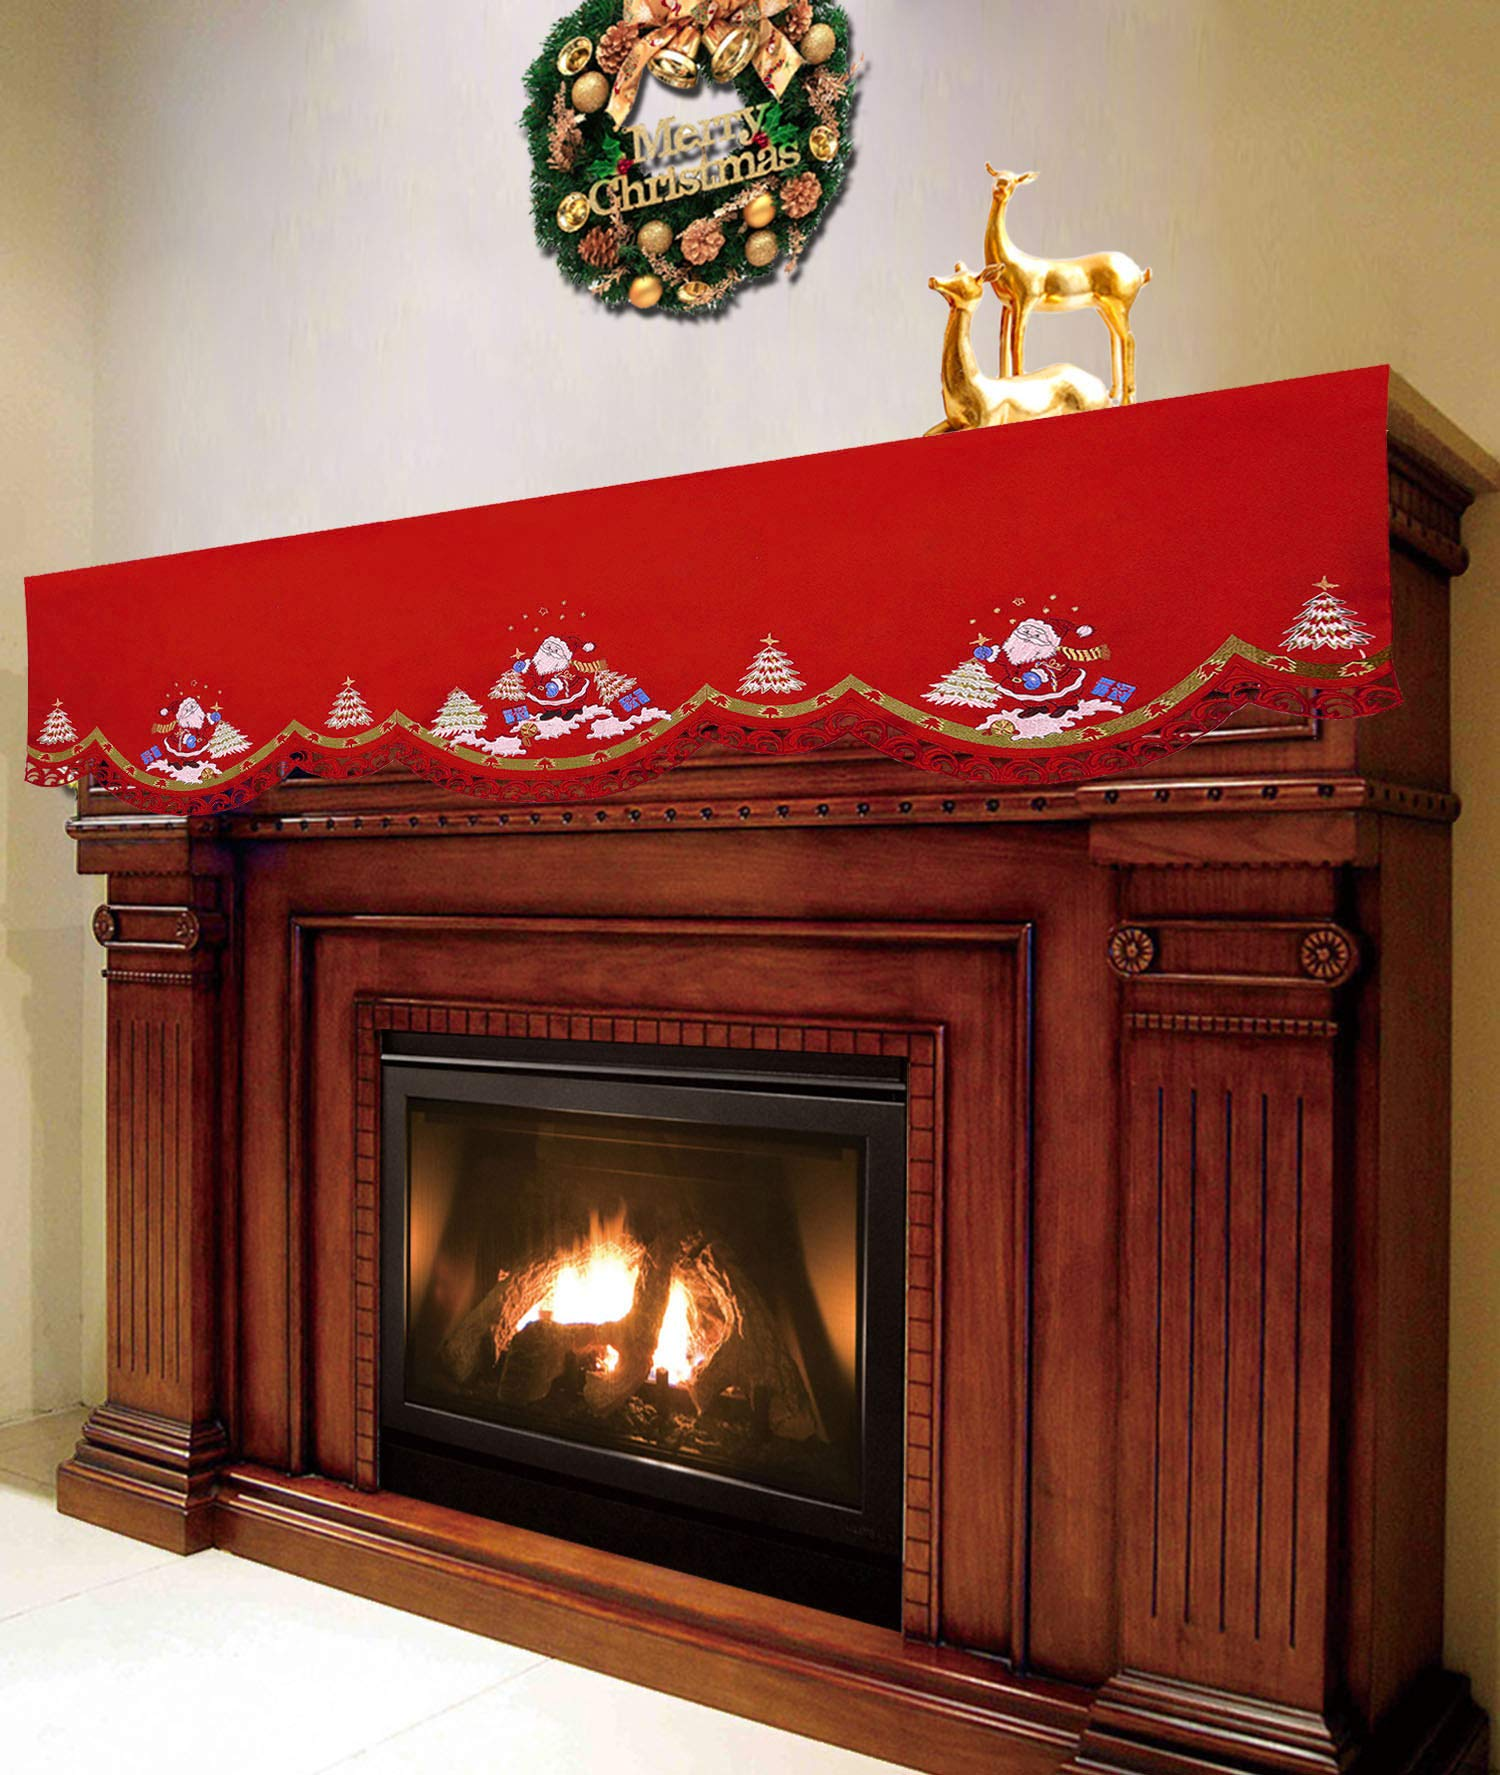 Simhomsen Embroidered Santa Claus Mantel Shelf Scarf Runner for Fireplace, Christmas Holiday Decorations (70 × 20 Inch) by Simhomsen